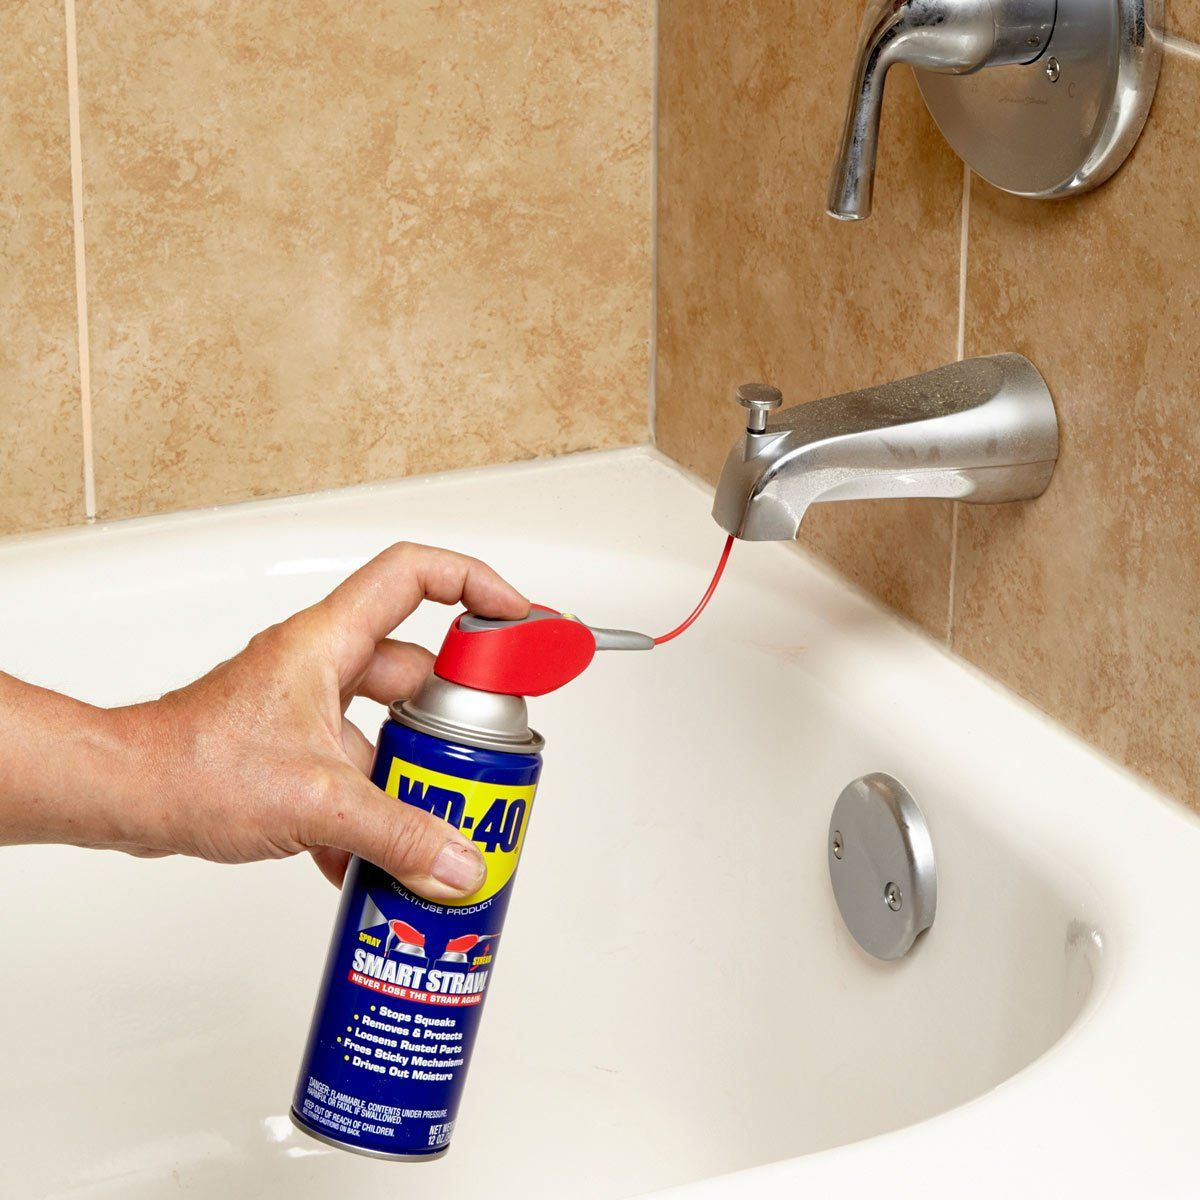 34 Brilliant Ways To Use Wd 40 At Home Cleaning Hacks House